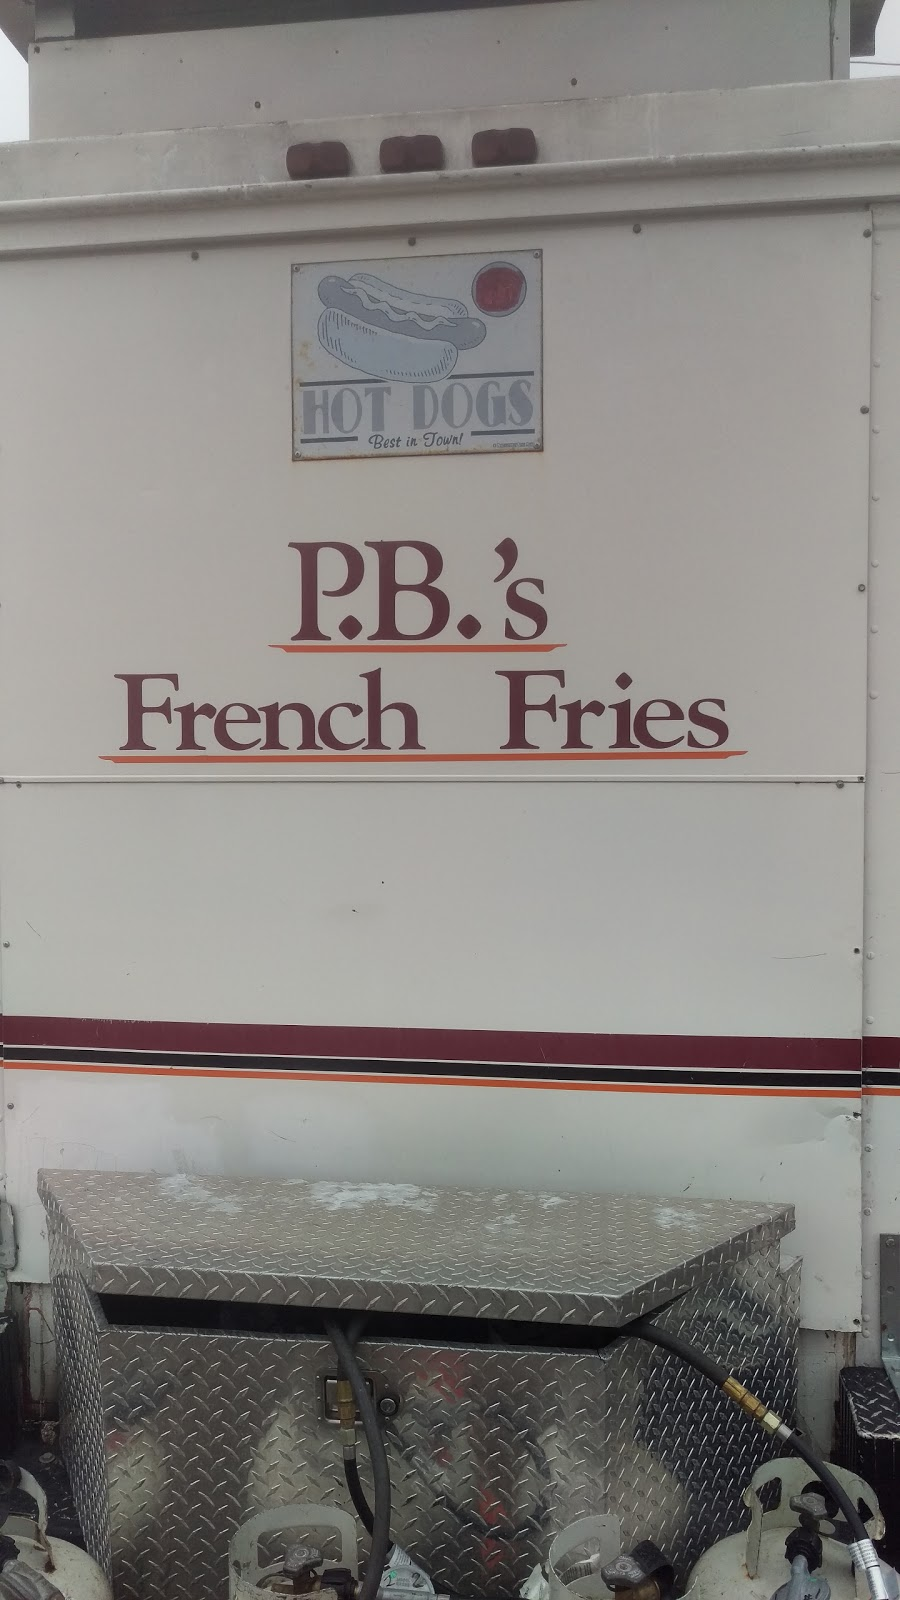 P.B.s French Fries | restaurant | 92Thames Street North, Ingersoll, ON N5C 3A9, Canada